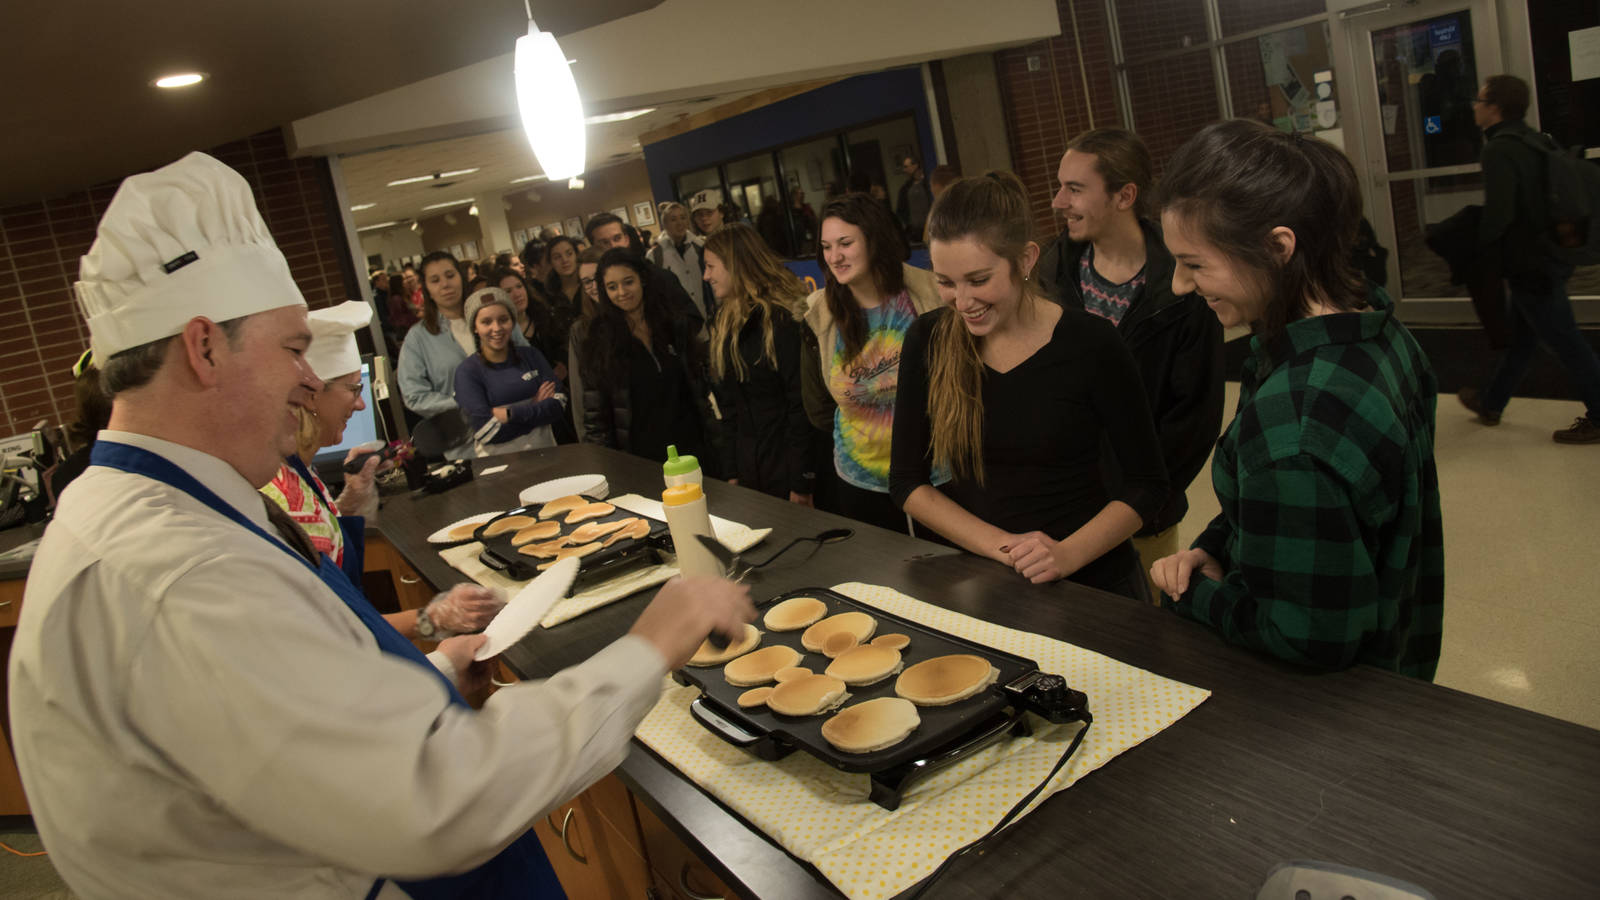 Chancellor Jim Schmidt flips pancakes for chanhungry students during finals week.